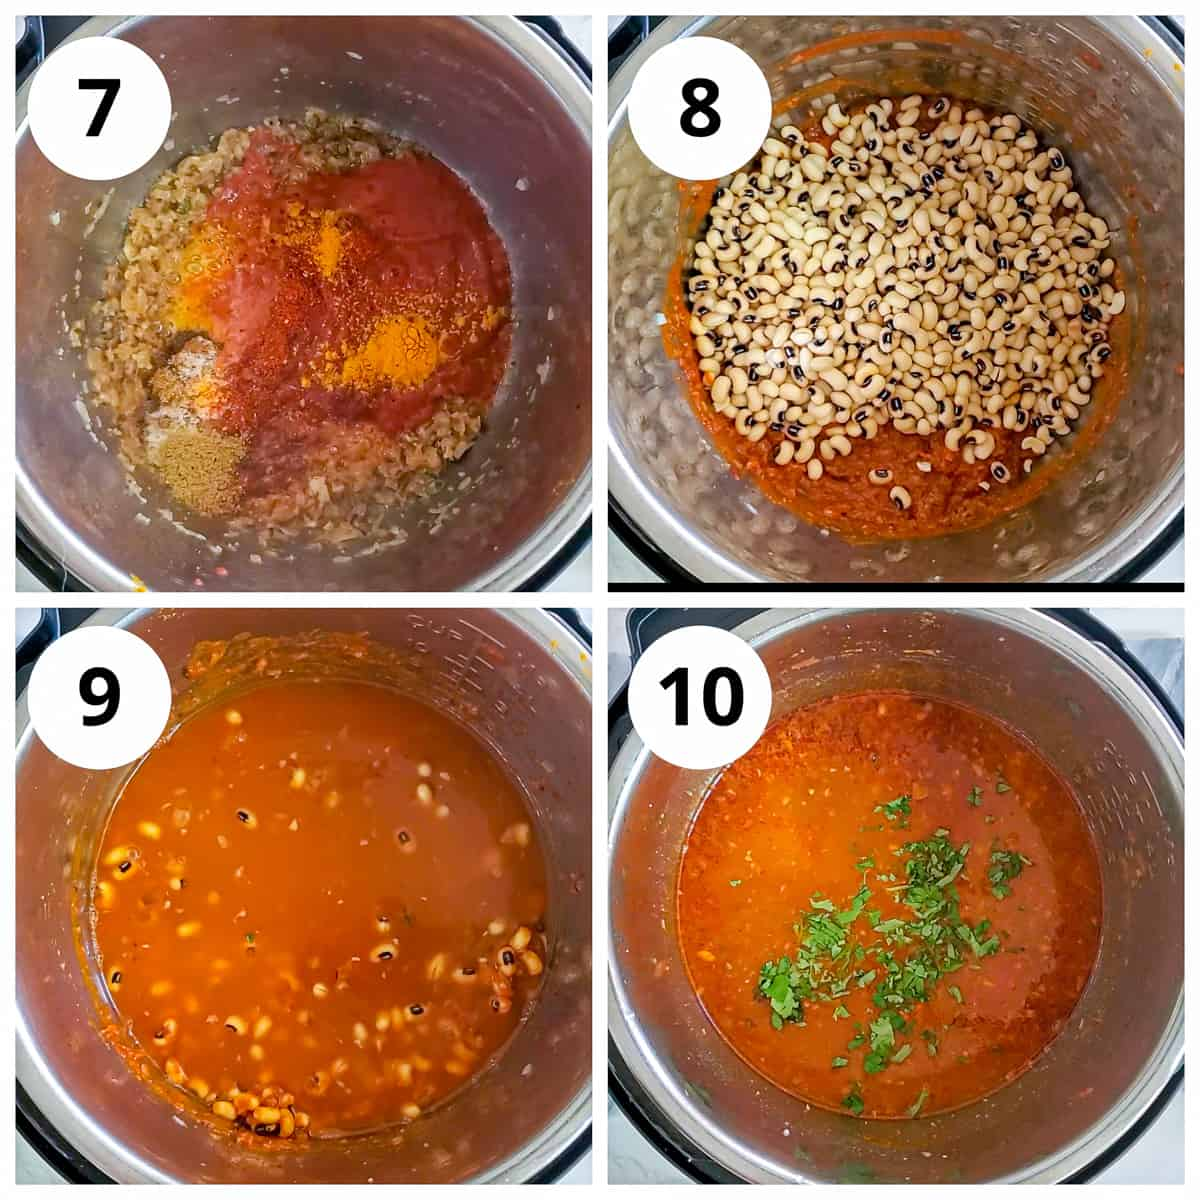 Steps for cooking lobia (black eyed peas curry) in Instant pot